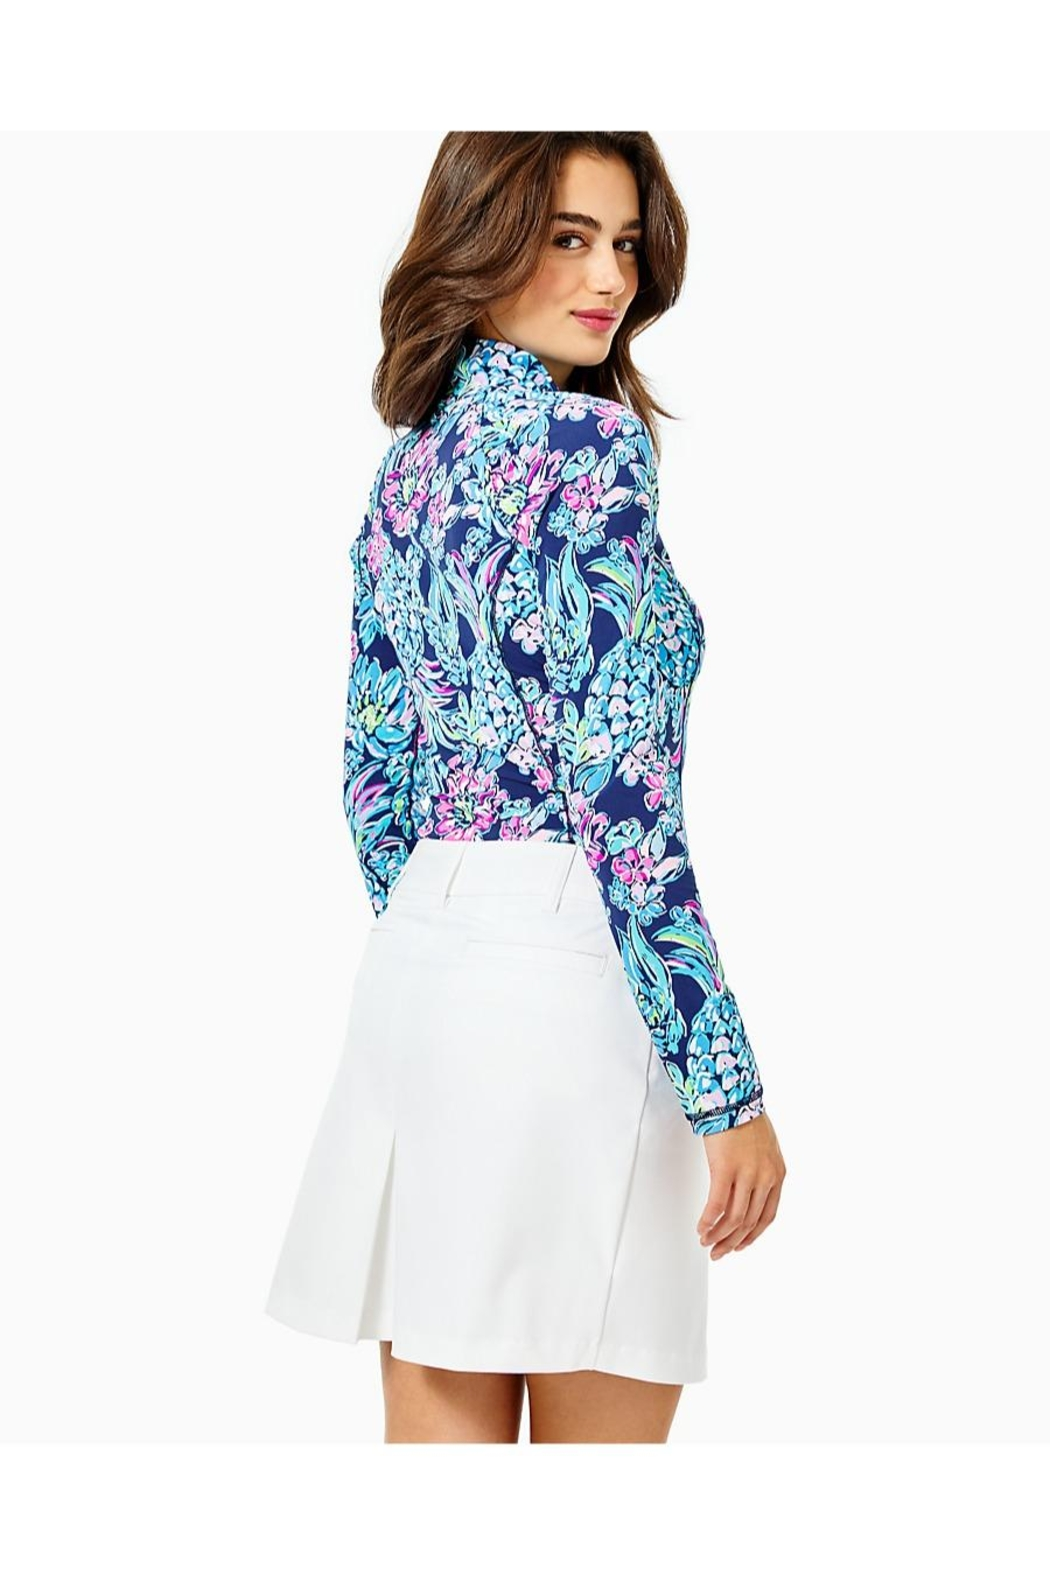 Lilly Pulitzer Luxletic Sybil Skort - Front Full Image